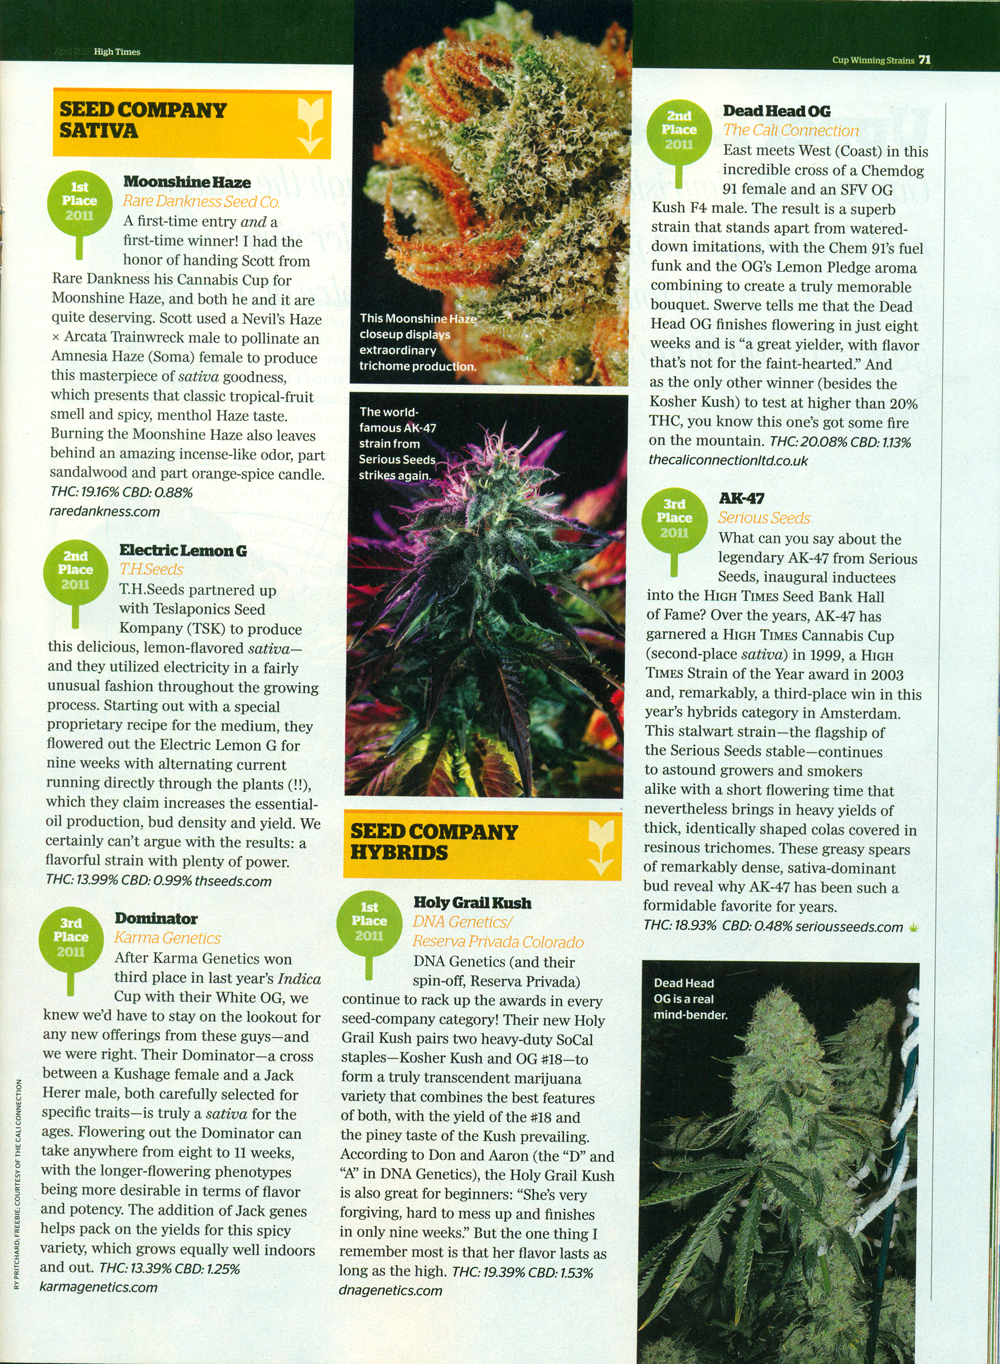 hightimes_april2012_p4.jpg